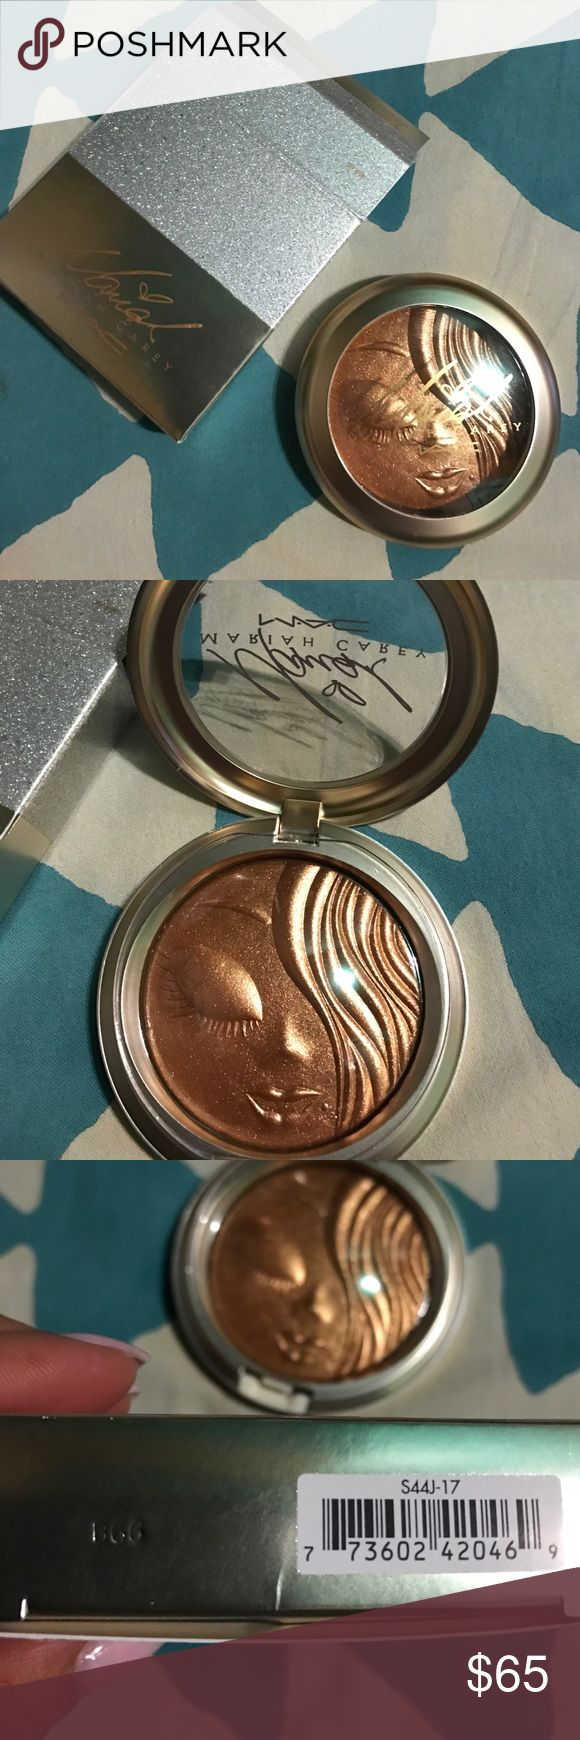 MAC EXTRA DIMENSION LIMITED EDITION MARIAH CAREY MAC LIMITED EDITION MARIAH CAREY MY MIMI EXTRA DIMENSION HIGHLIGHTER . MAC Cosmetics Makeup Luminizer